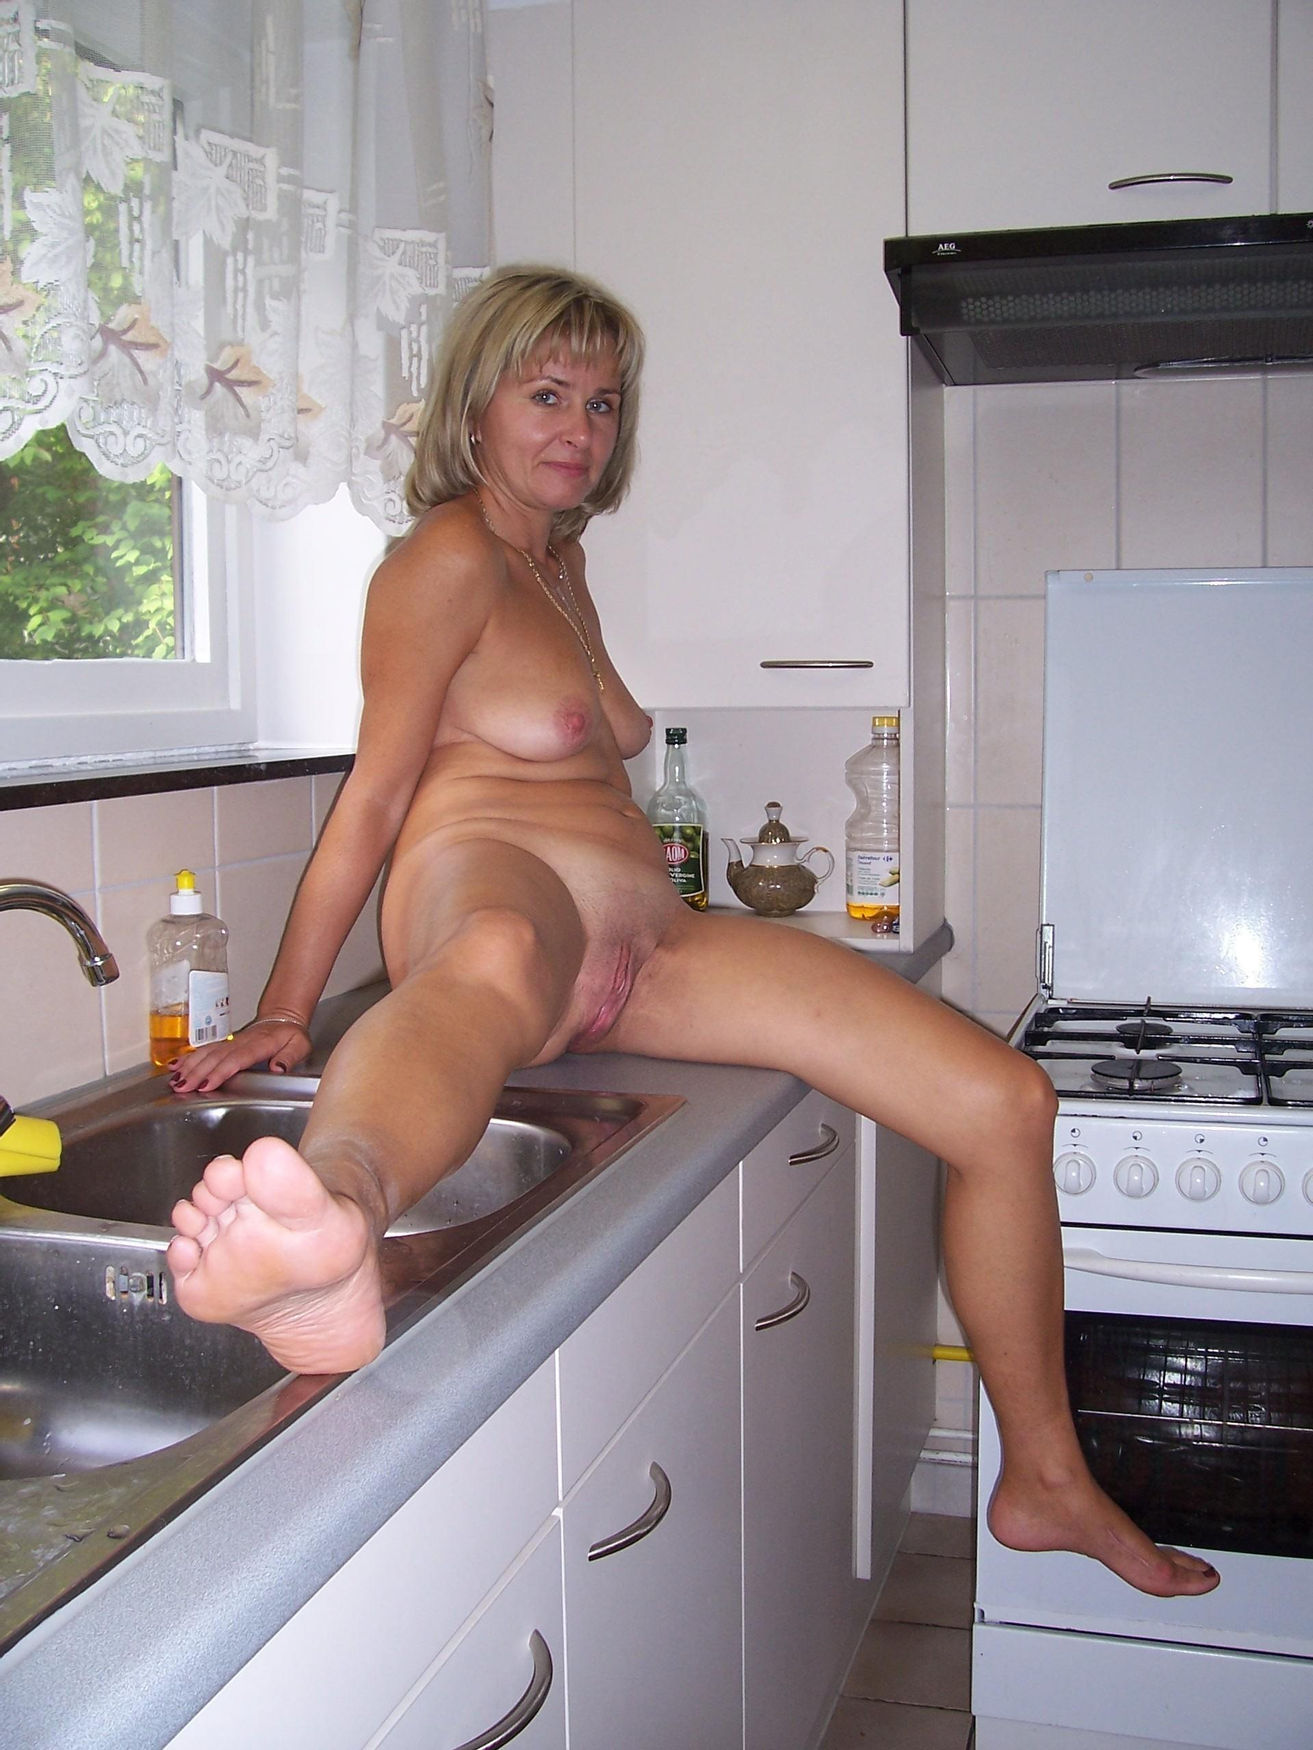 Hot wife spreads legs her naked pussy in the kitchen